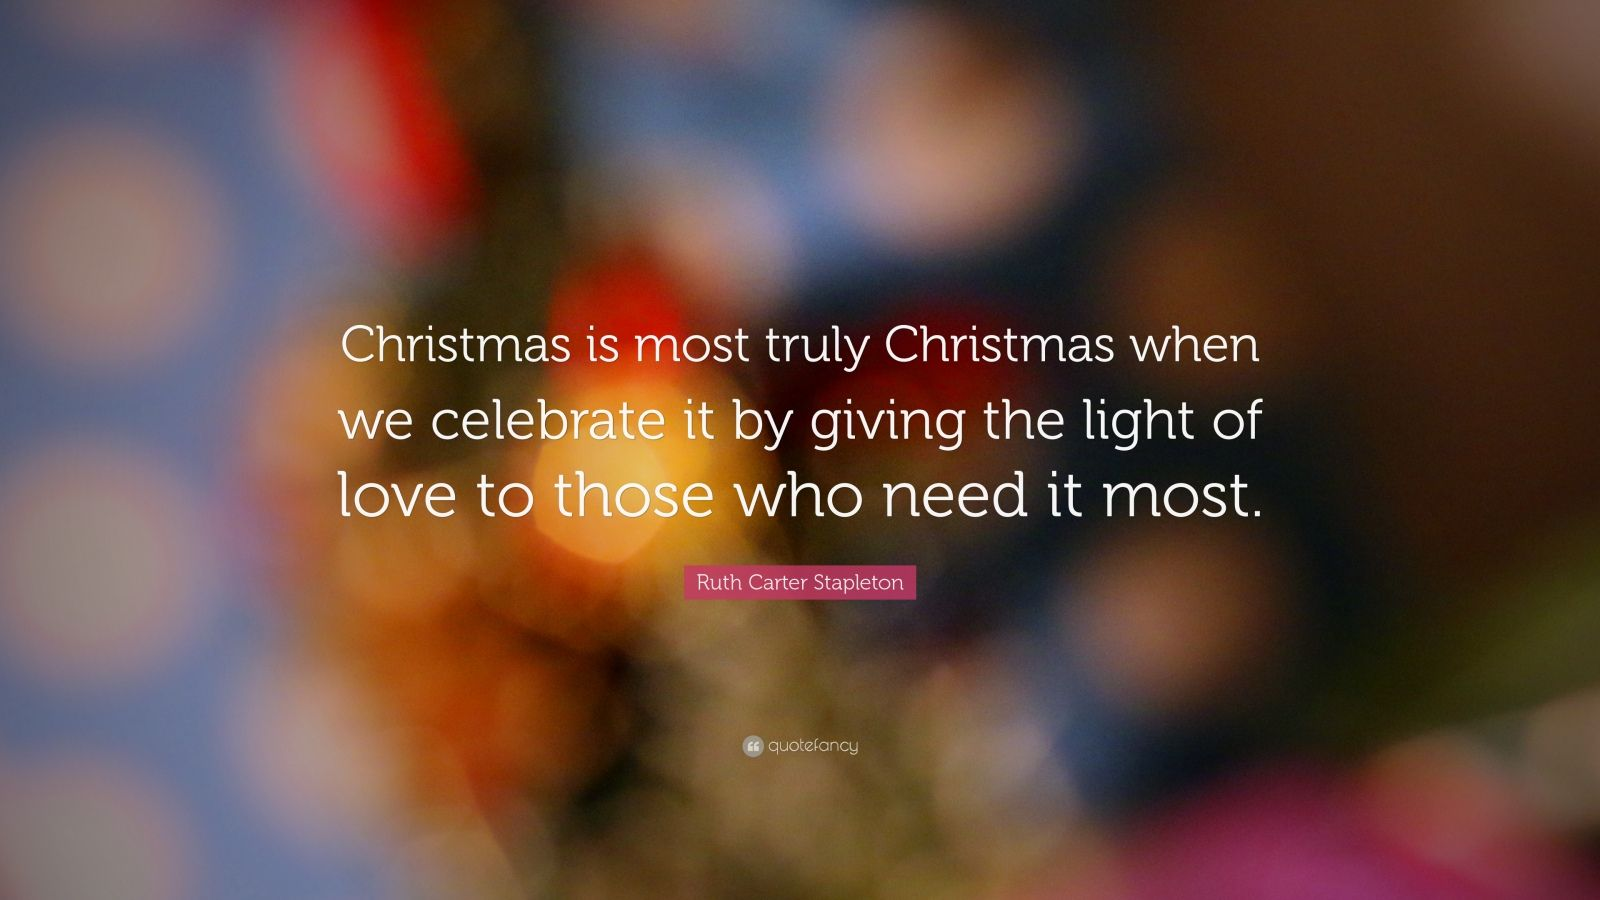 """Ruth Carter Stapleton Quote: """"Christmas is most truly Christmas when we celebrate it by giving the light of love to those who need it most."""""""